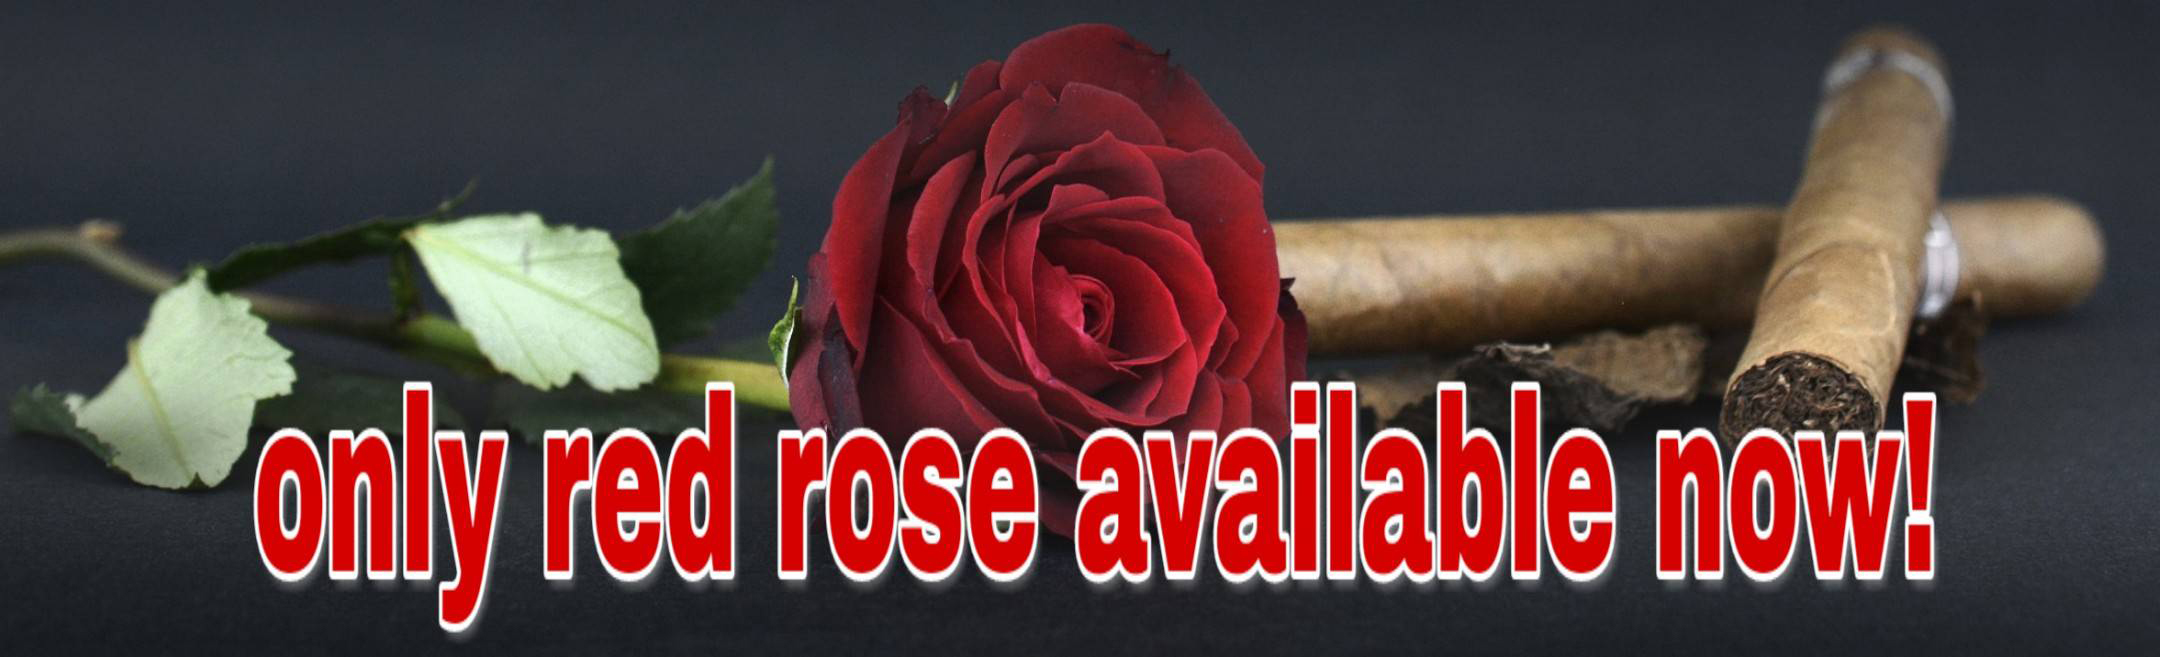 Valentine's Day Rose Thailand